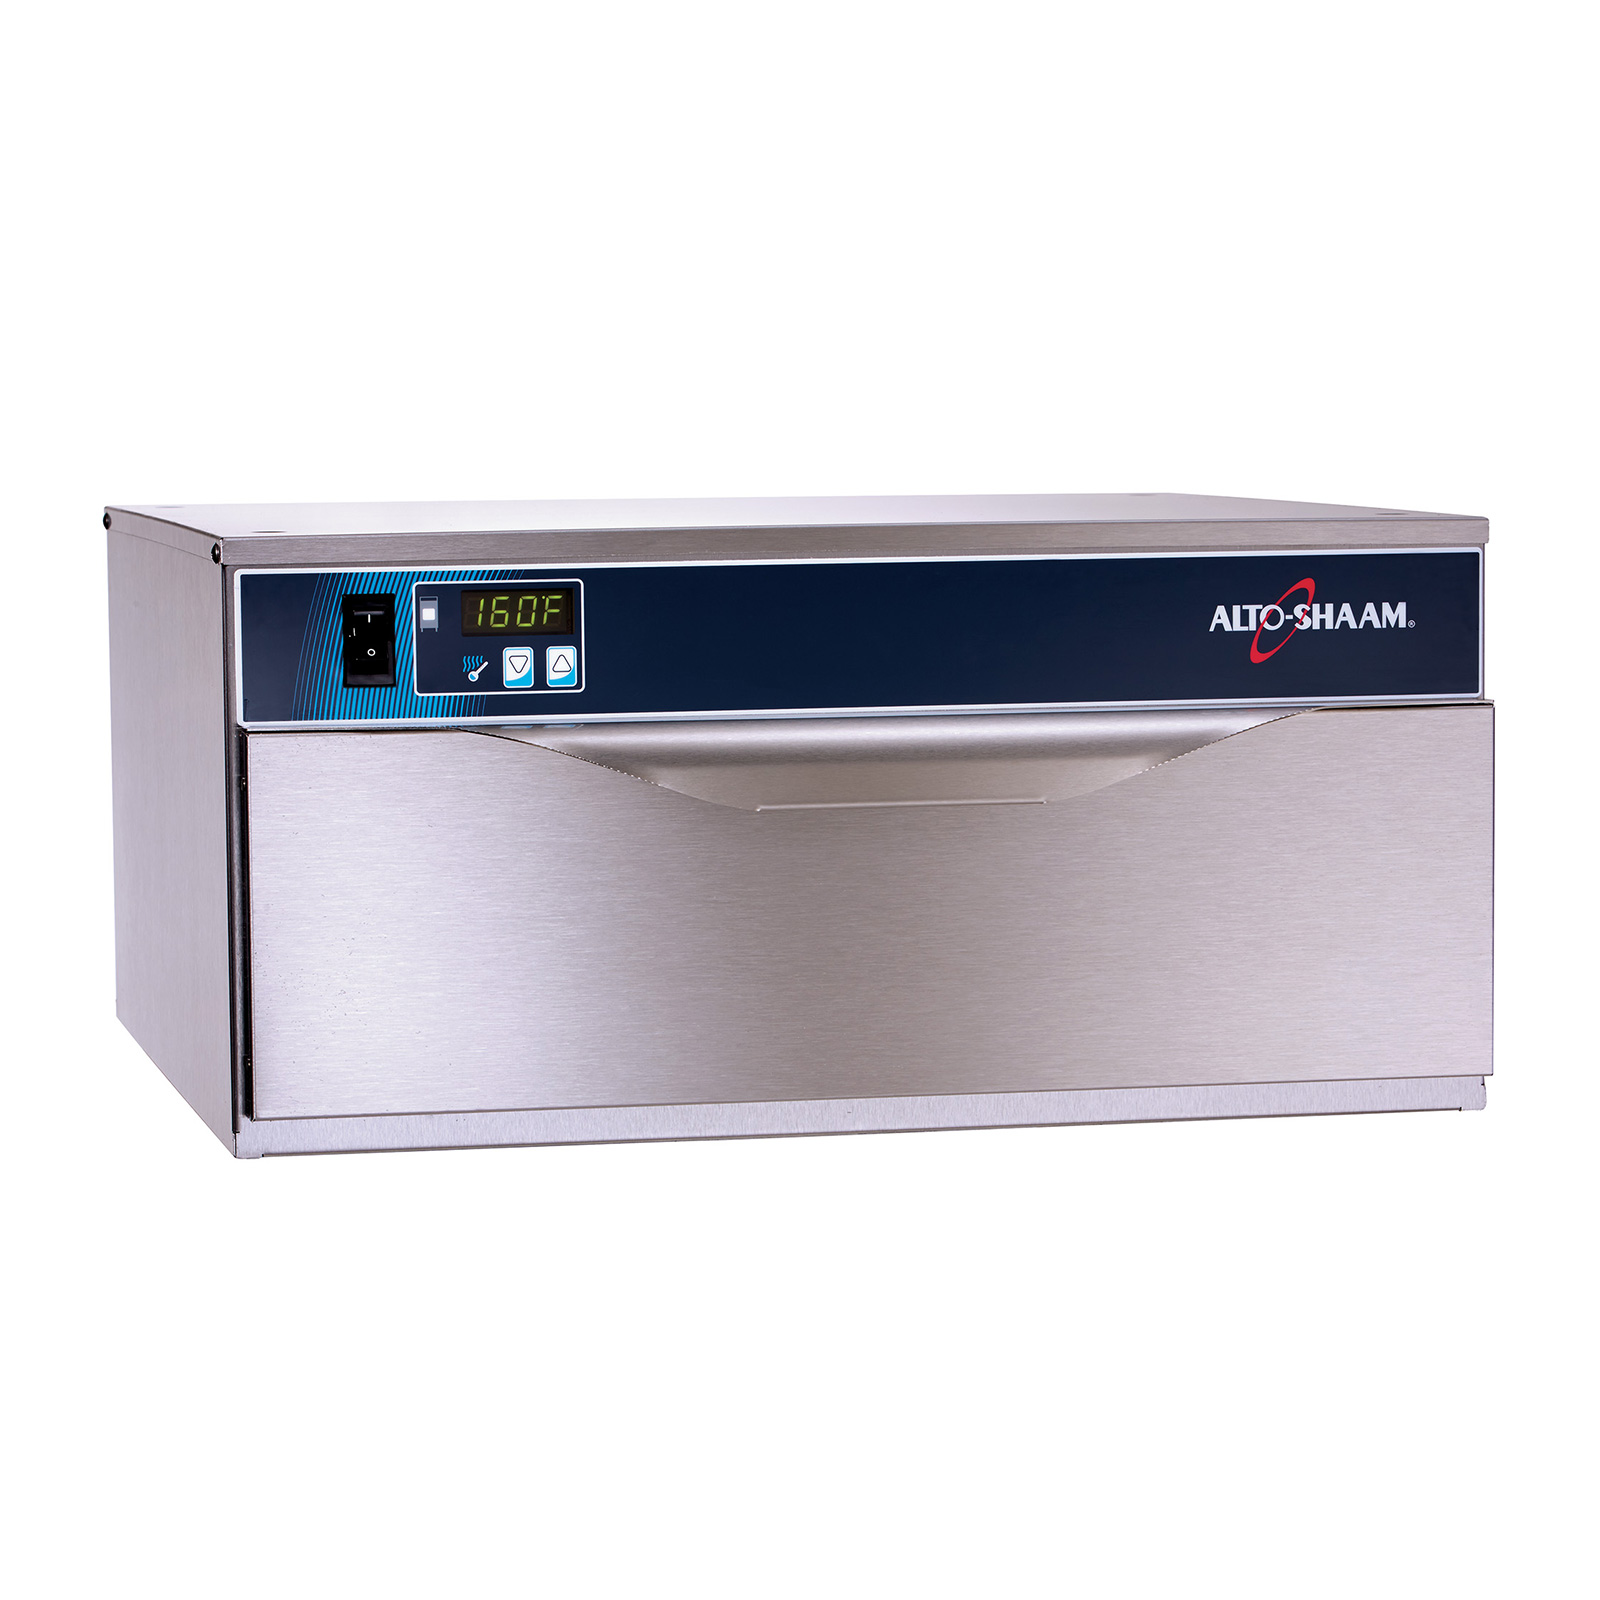 Alto-Shaam 500-1D-QS warming drawer, free standing